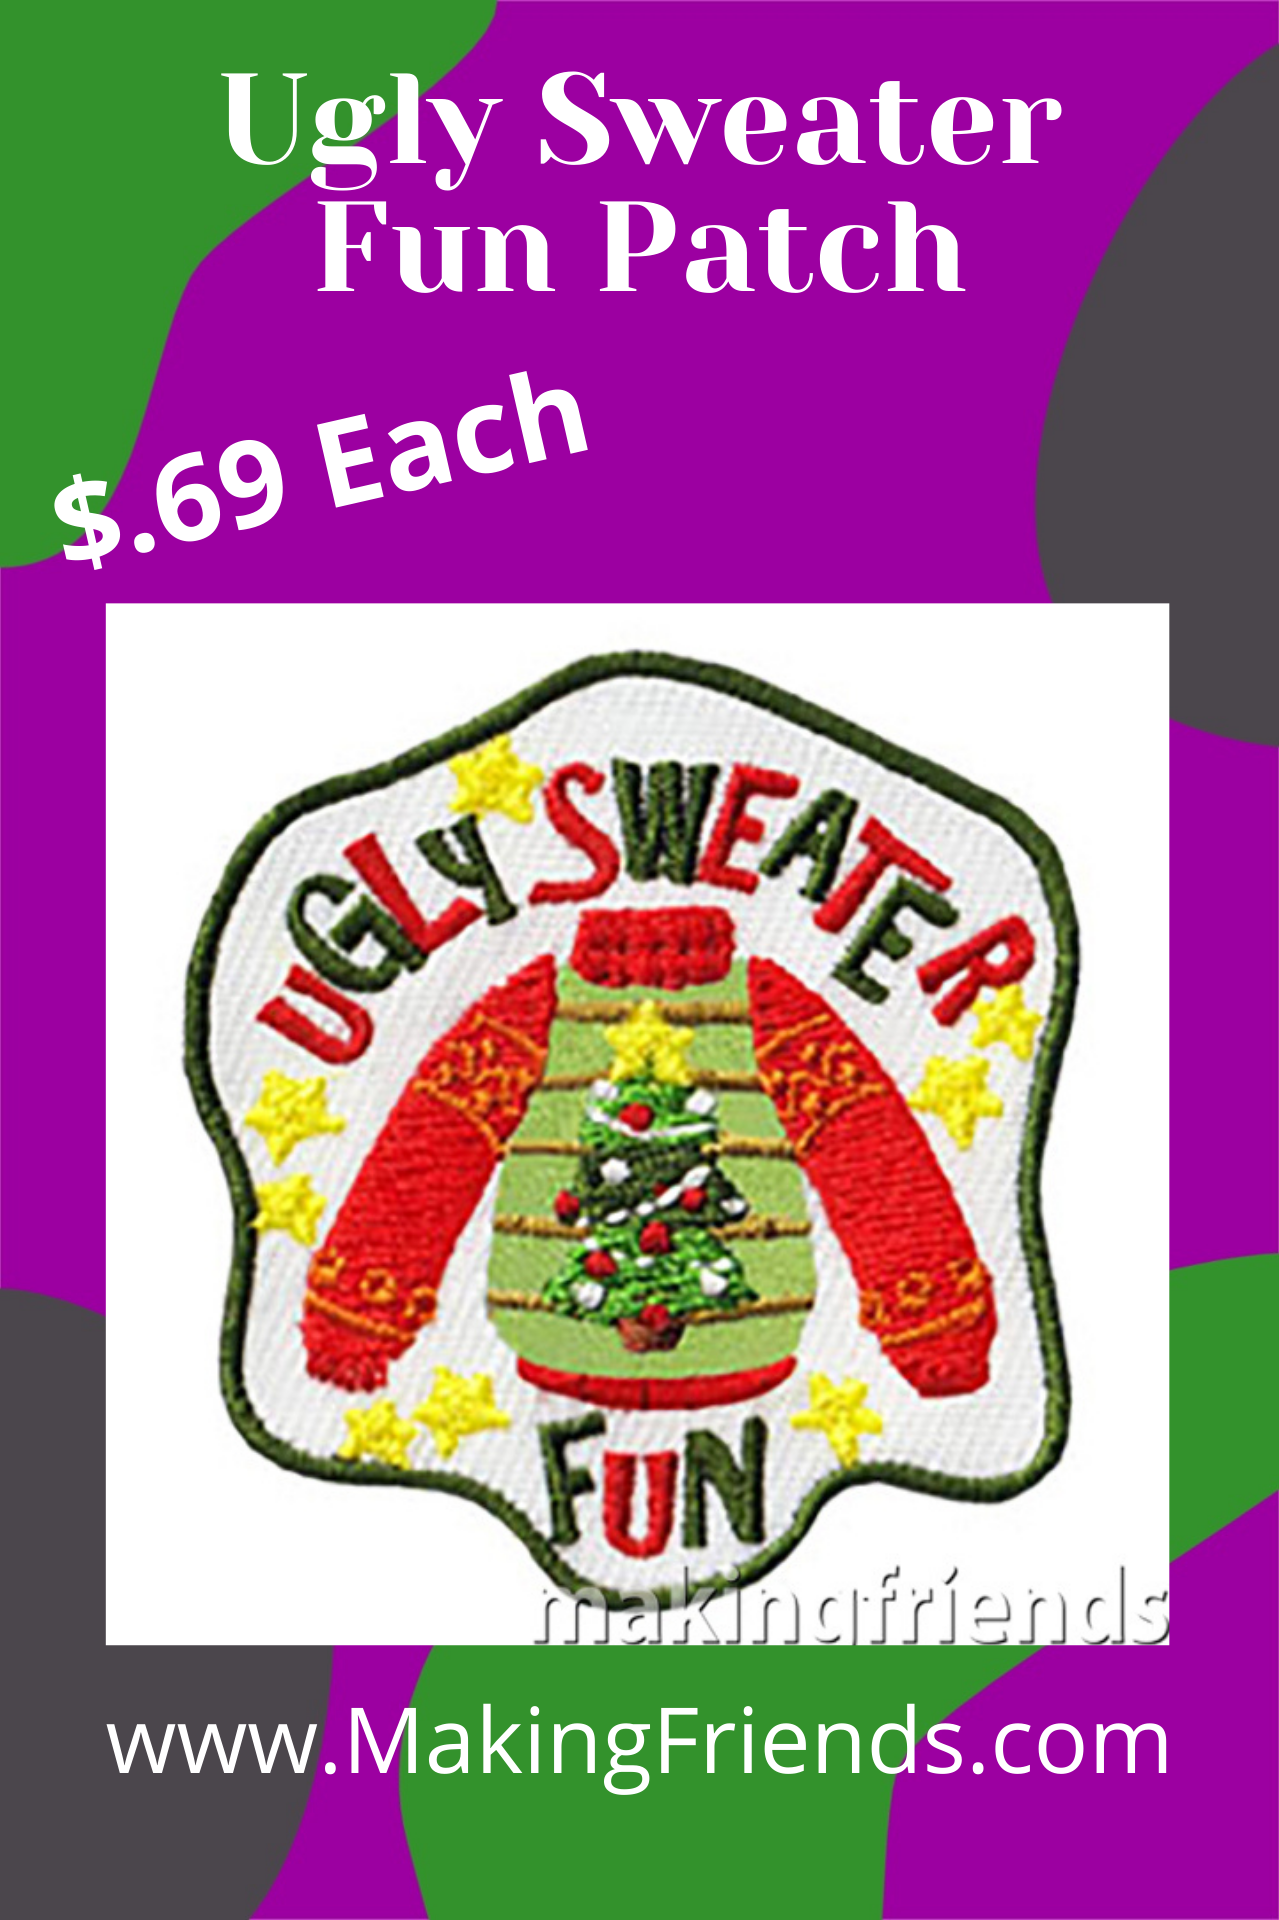 Ugly sweater parties are a great theme for a troop holiday party. Encourage your scouts to create their own ugly sweaters with bows, garland, tinsel, ornaments or any fun holiday decorations. The Ugly Sweater patch from MakingFriends®.com will be a fun reminder of a silly celebration and make everyone smile. via @gsleader411